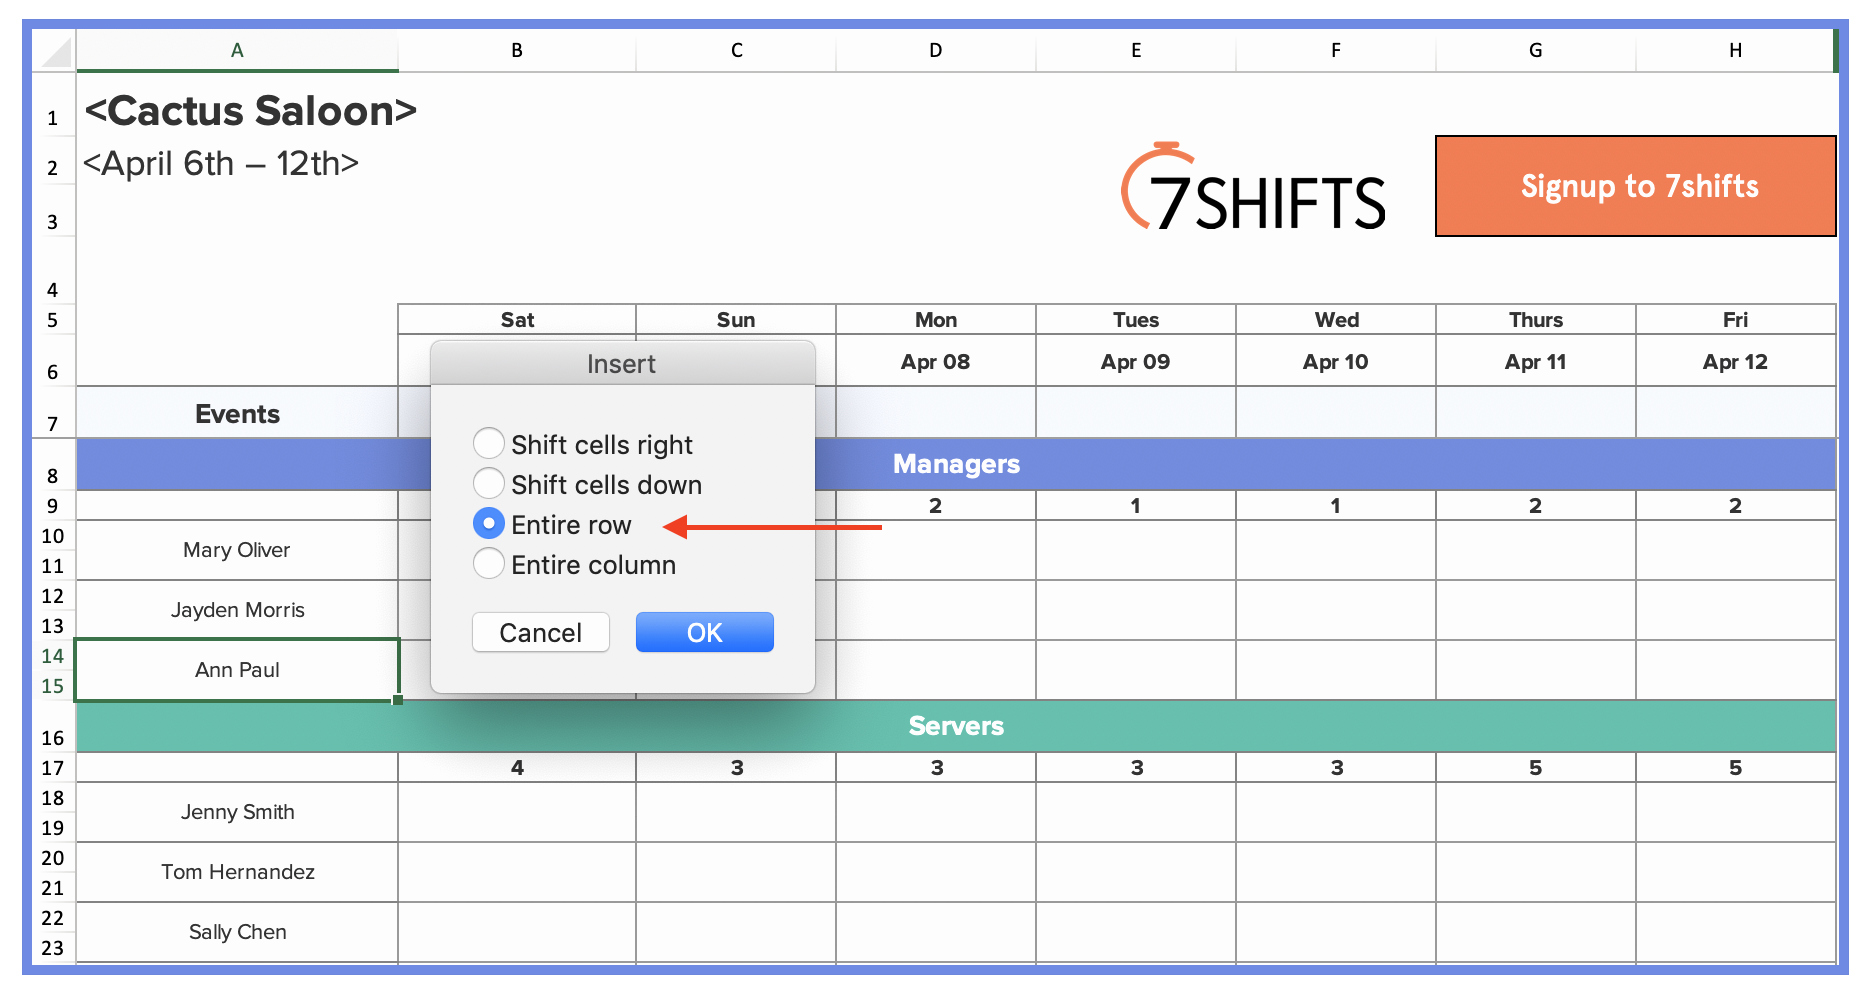 Restaurant Employee Schedule Template New How to Make A Restaurant Work Schedule with Free Excel